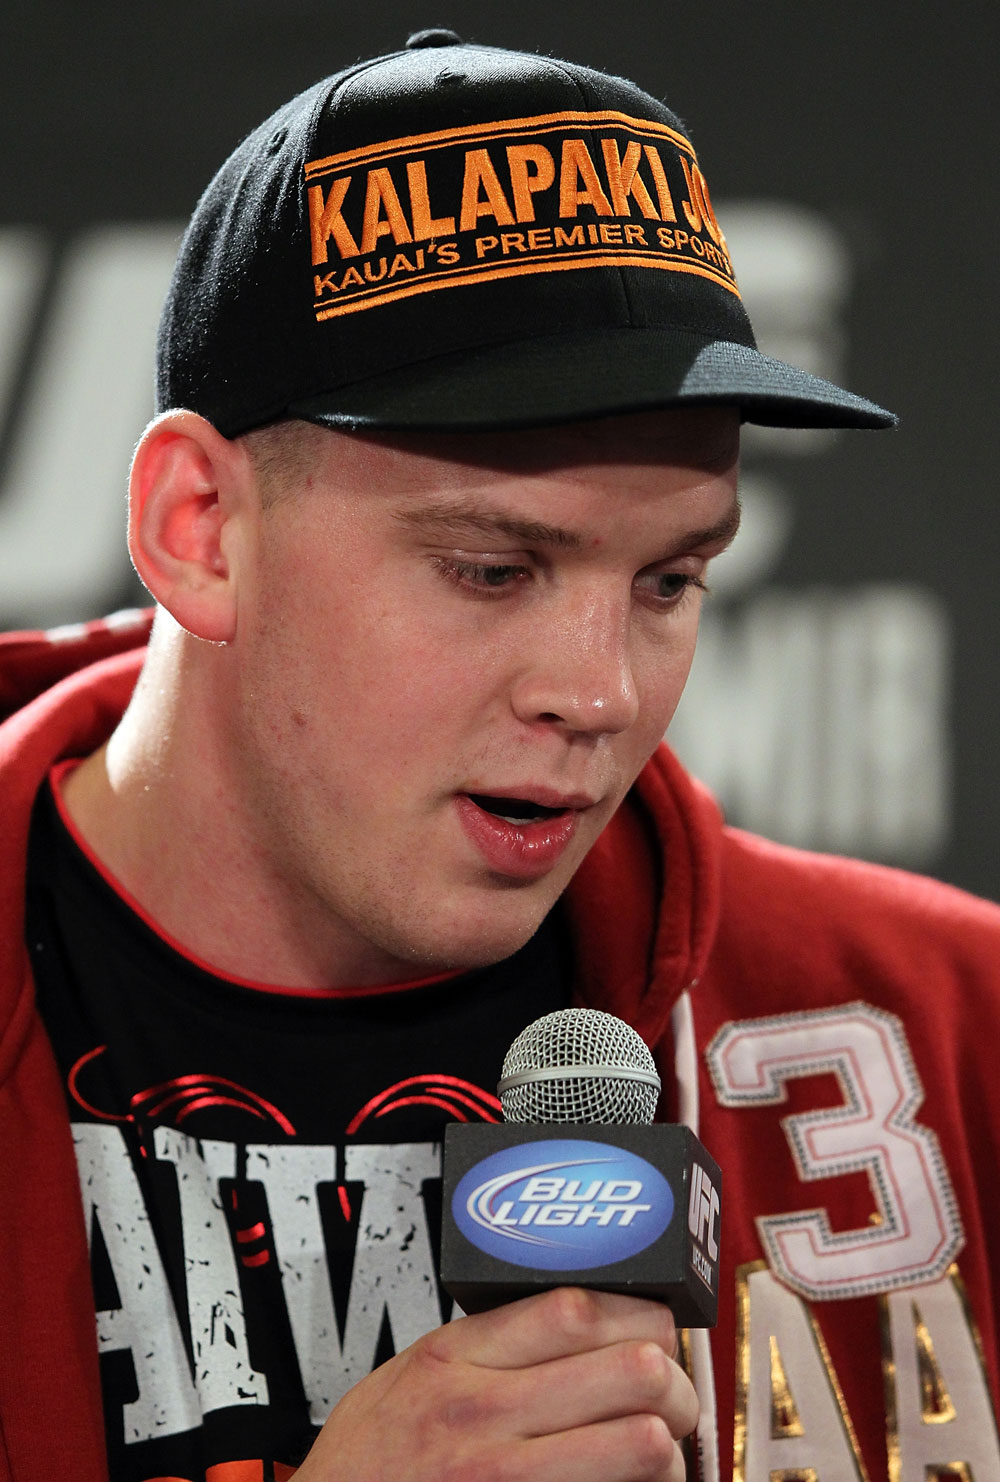 LAS VEGAS, NV - MAY 24:   Stefan Struve attends the UFC 146 press conference at MGM Grand on May 24, 2012 in Las Vegas, Nevada.  (Photo by Josh Hedges/Zuffa LLC/Zuffa LLC via Getty Images)